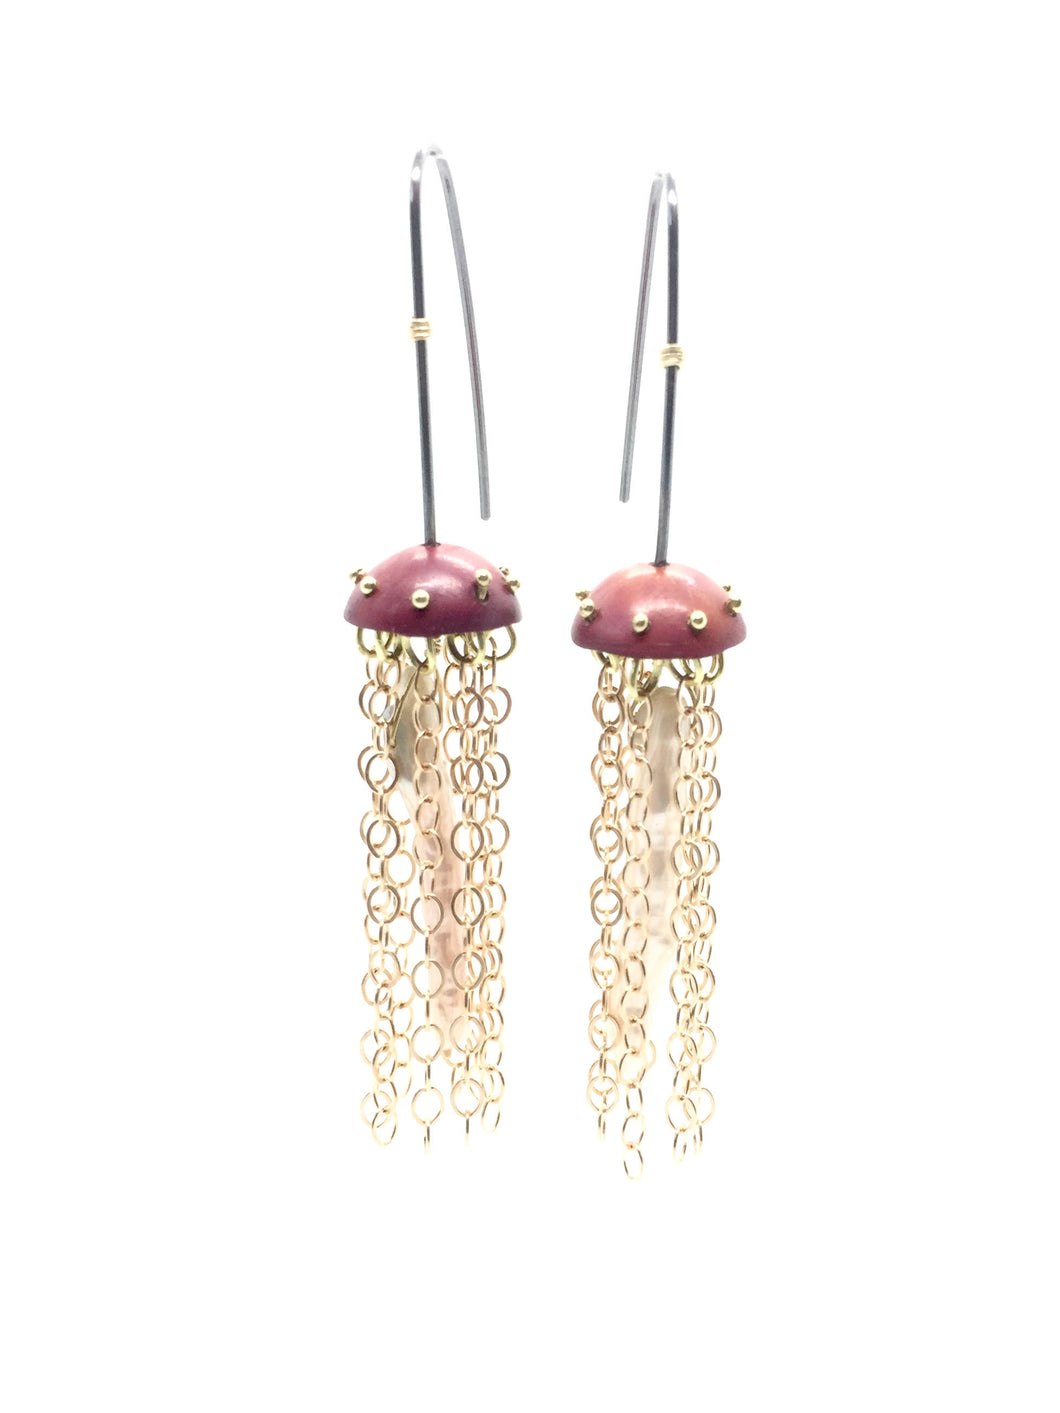 Copper Jellyfish Chain Earrings with Pearls and Sterling Silver Earwires